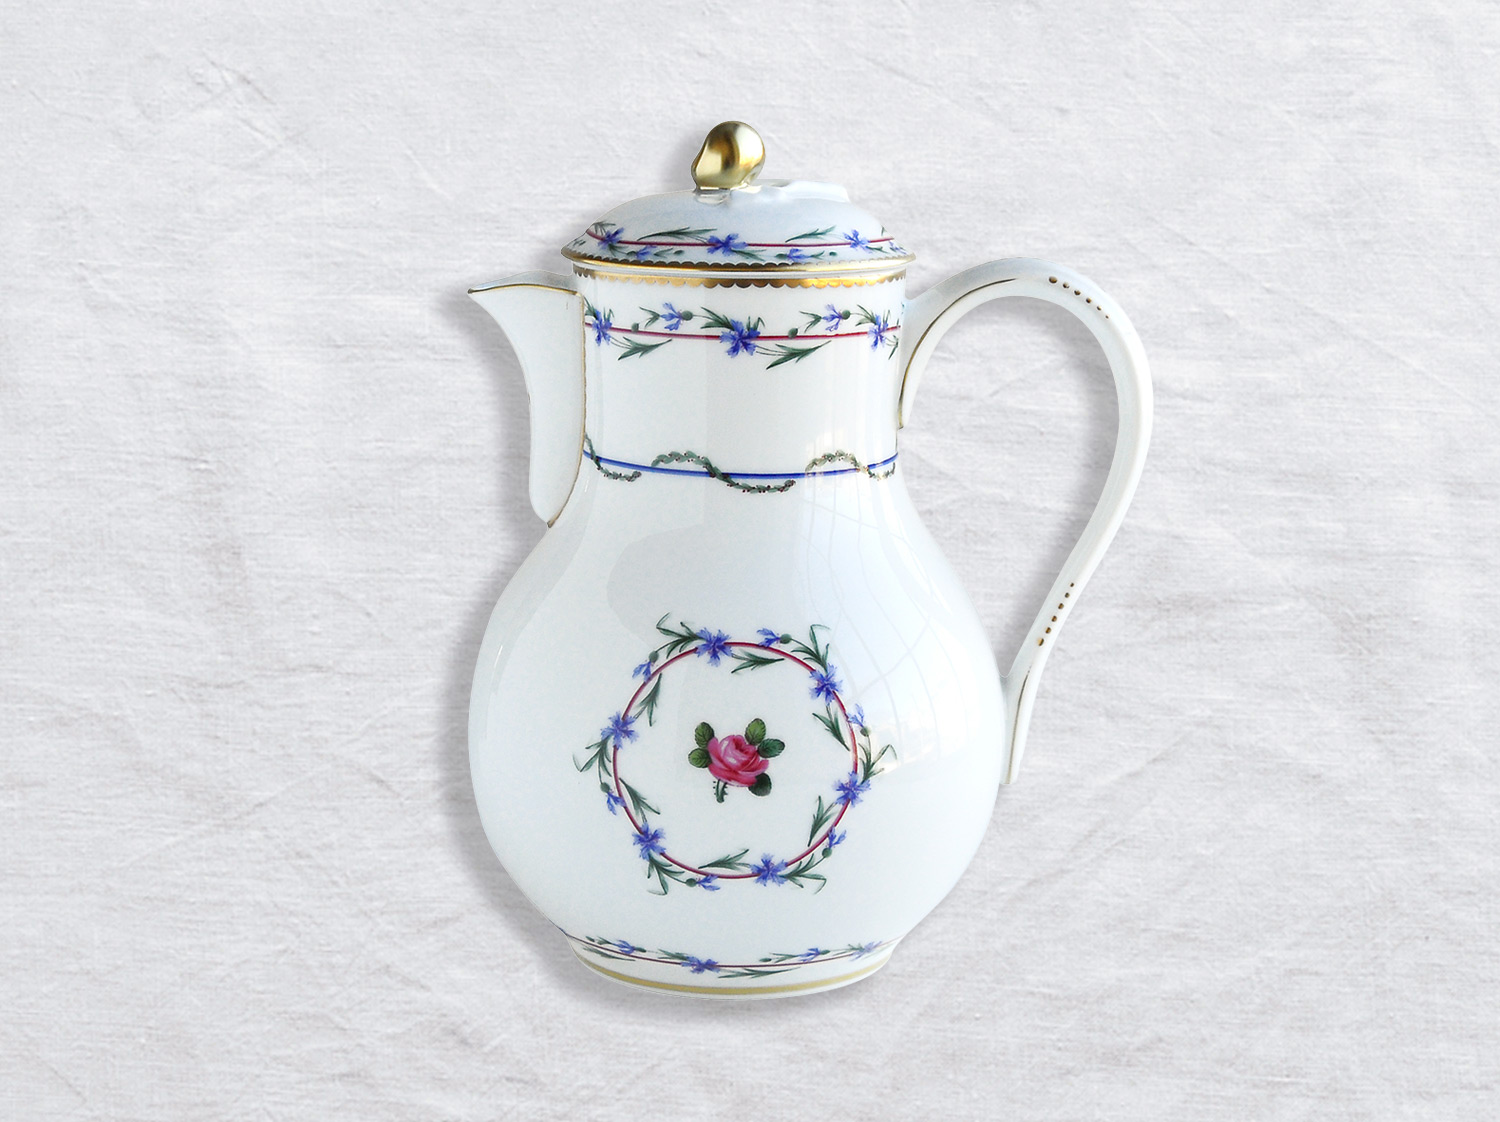 Verseuse haute 12 tasses 1,4 L en porcelaine de la collection Gobelet du roy Bernardaud